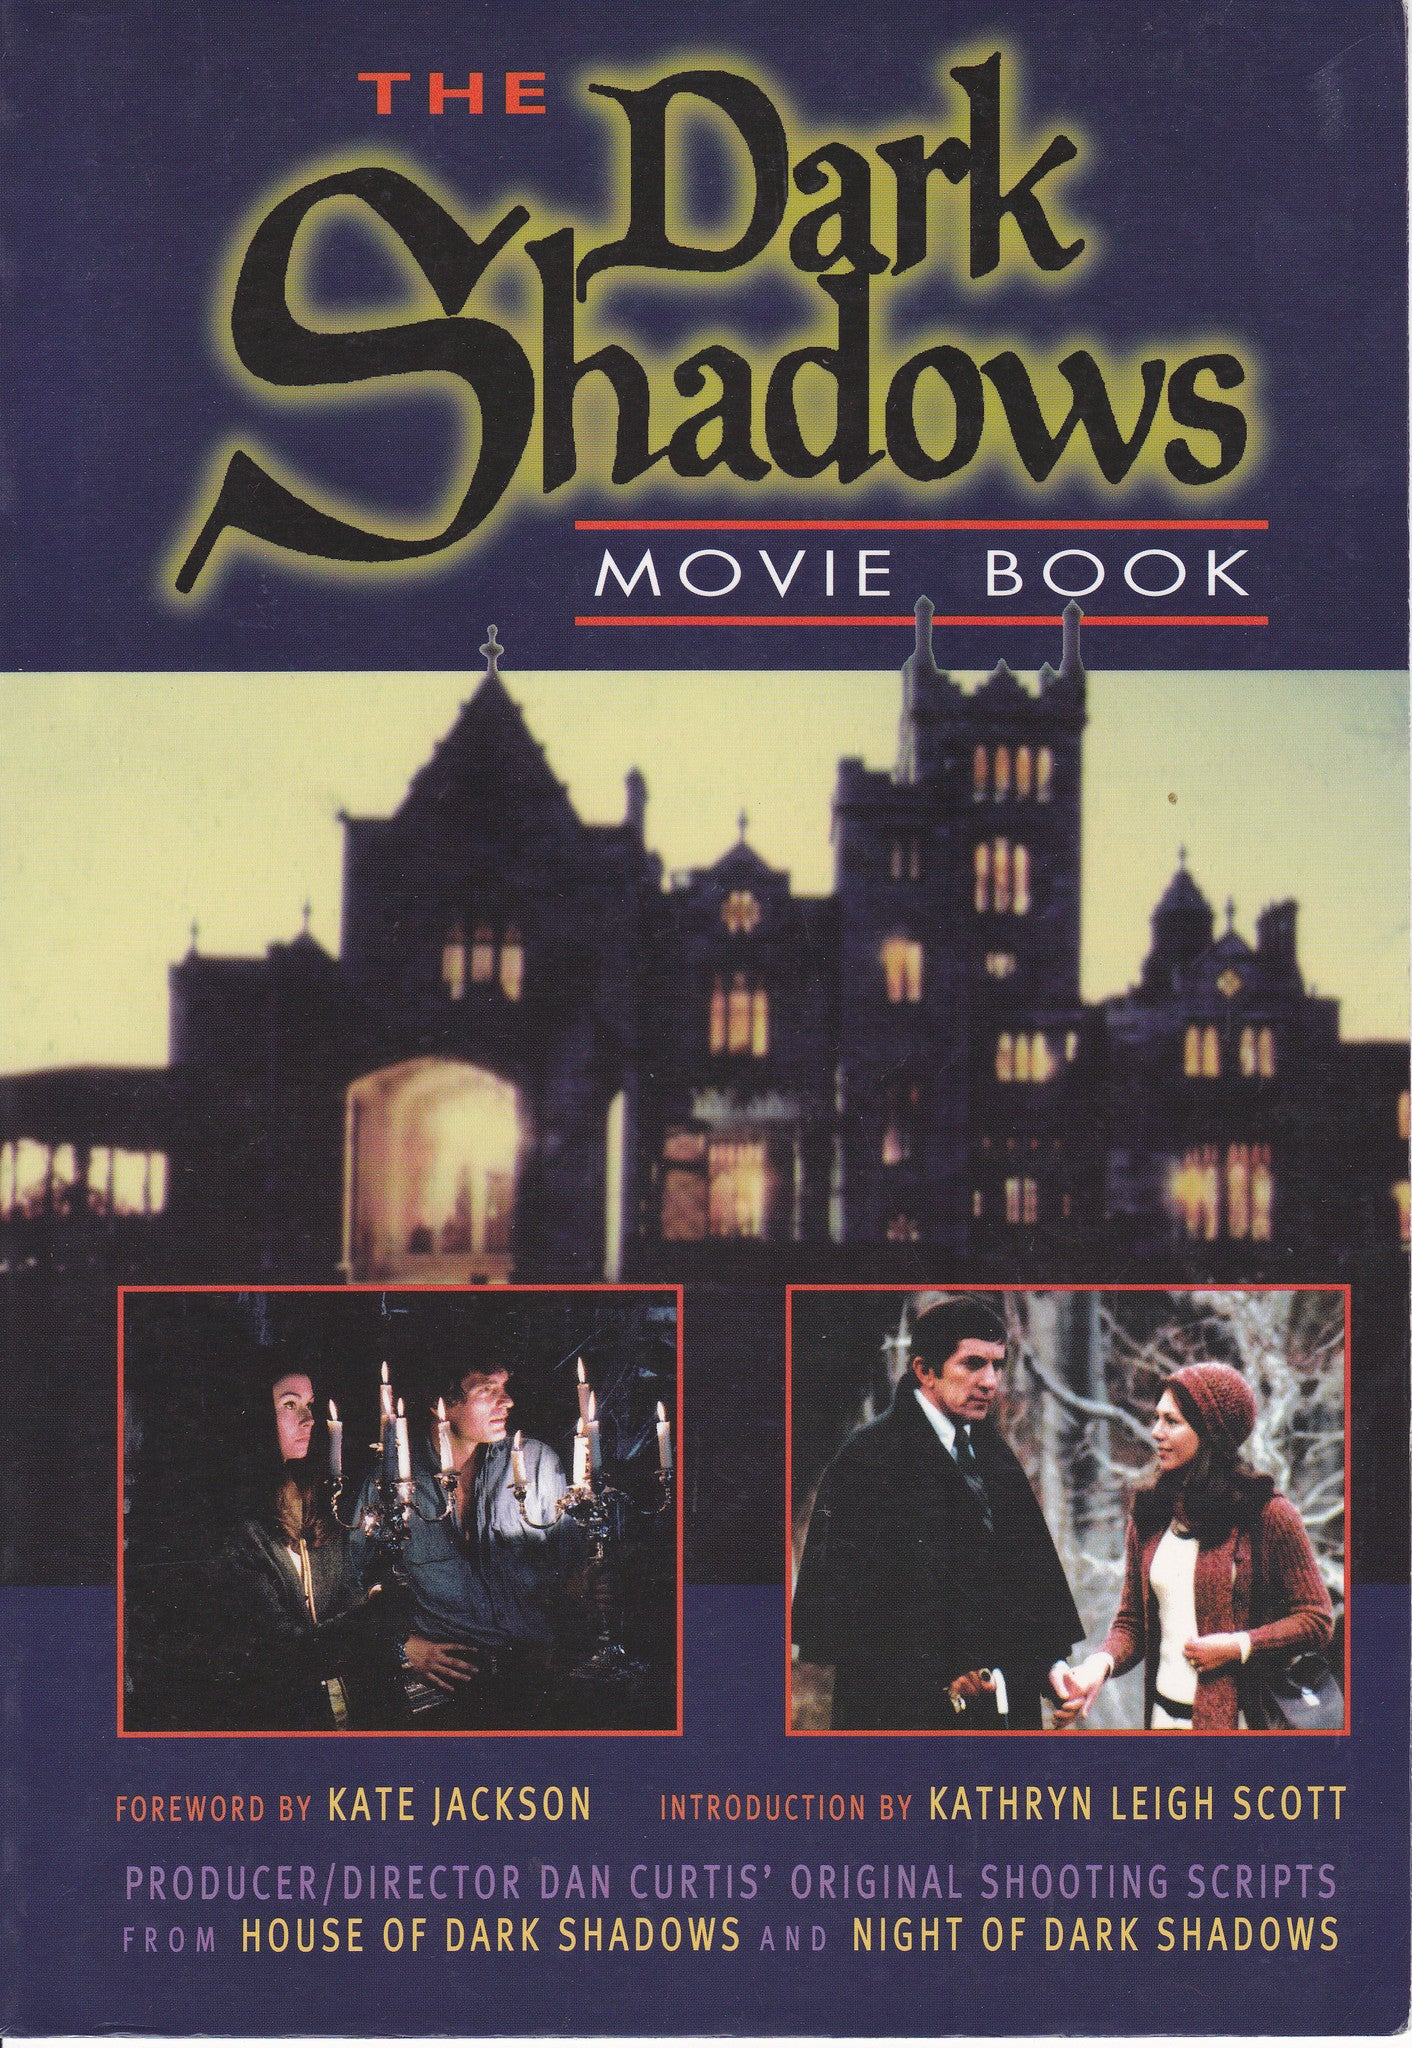 The Dark Shadows Movie Book (slightly dinged-up) - only $19.95!